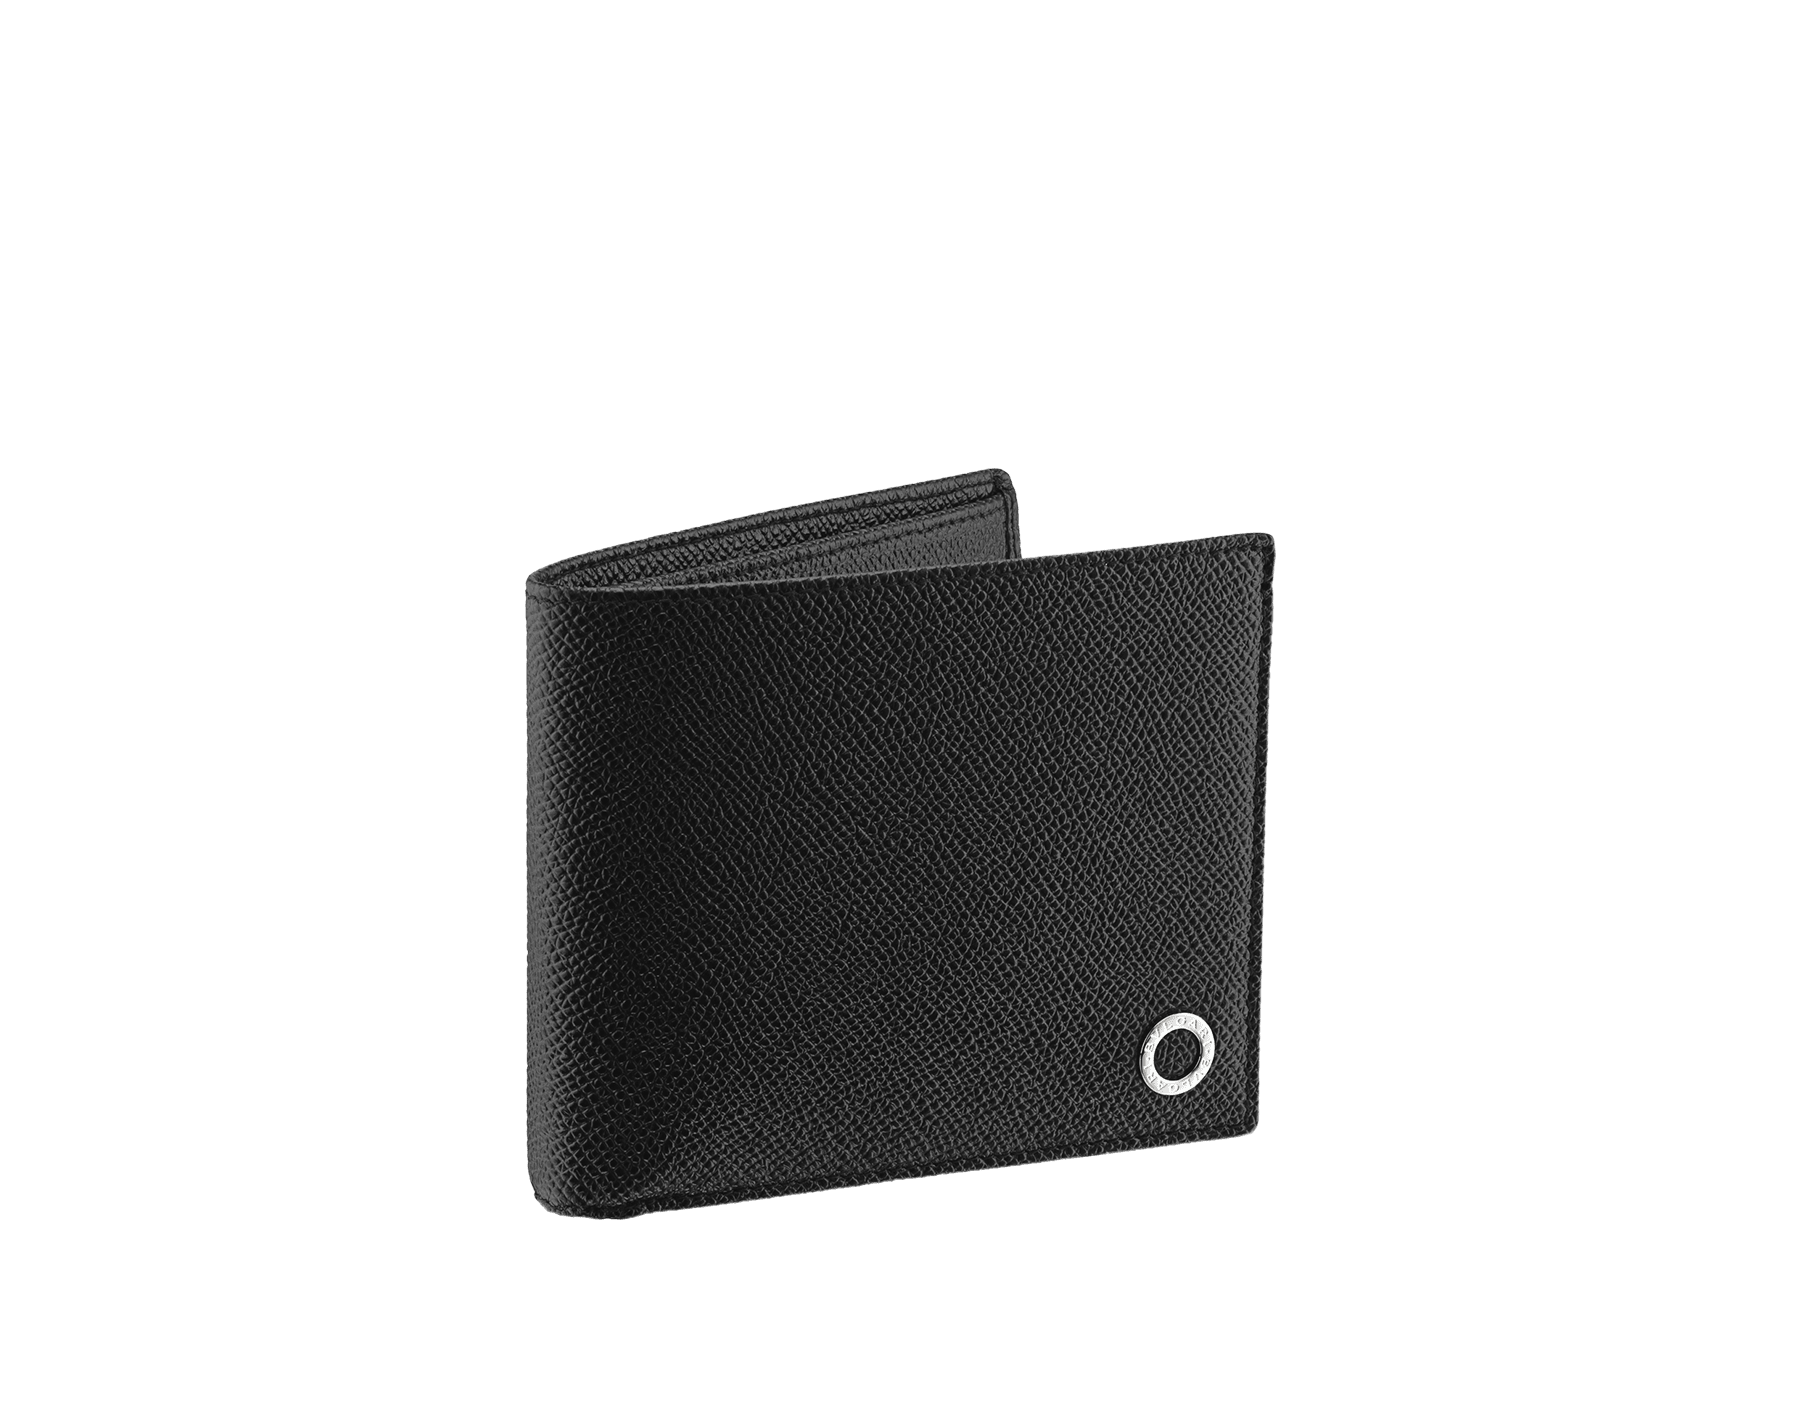 Wallet hipster for men in black grain calf leather with brass palladium plated hardware featuring the BVLGARI BVLGARI motif. 38116 image 1